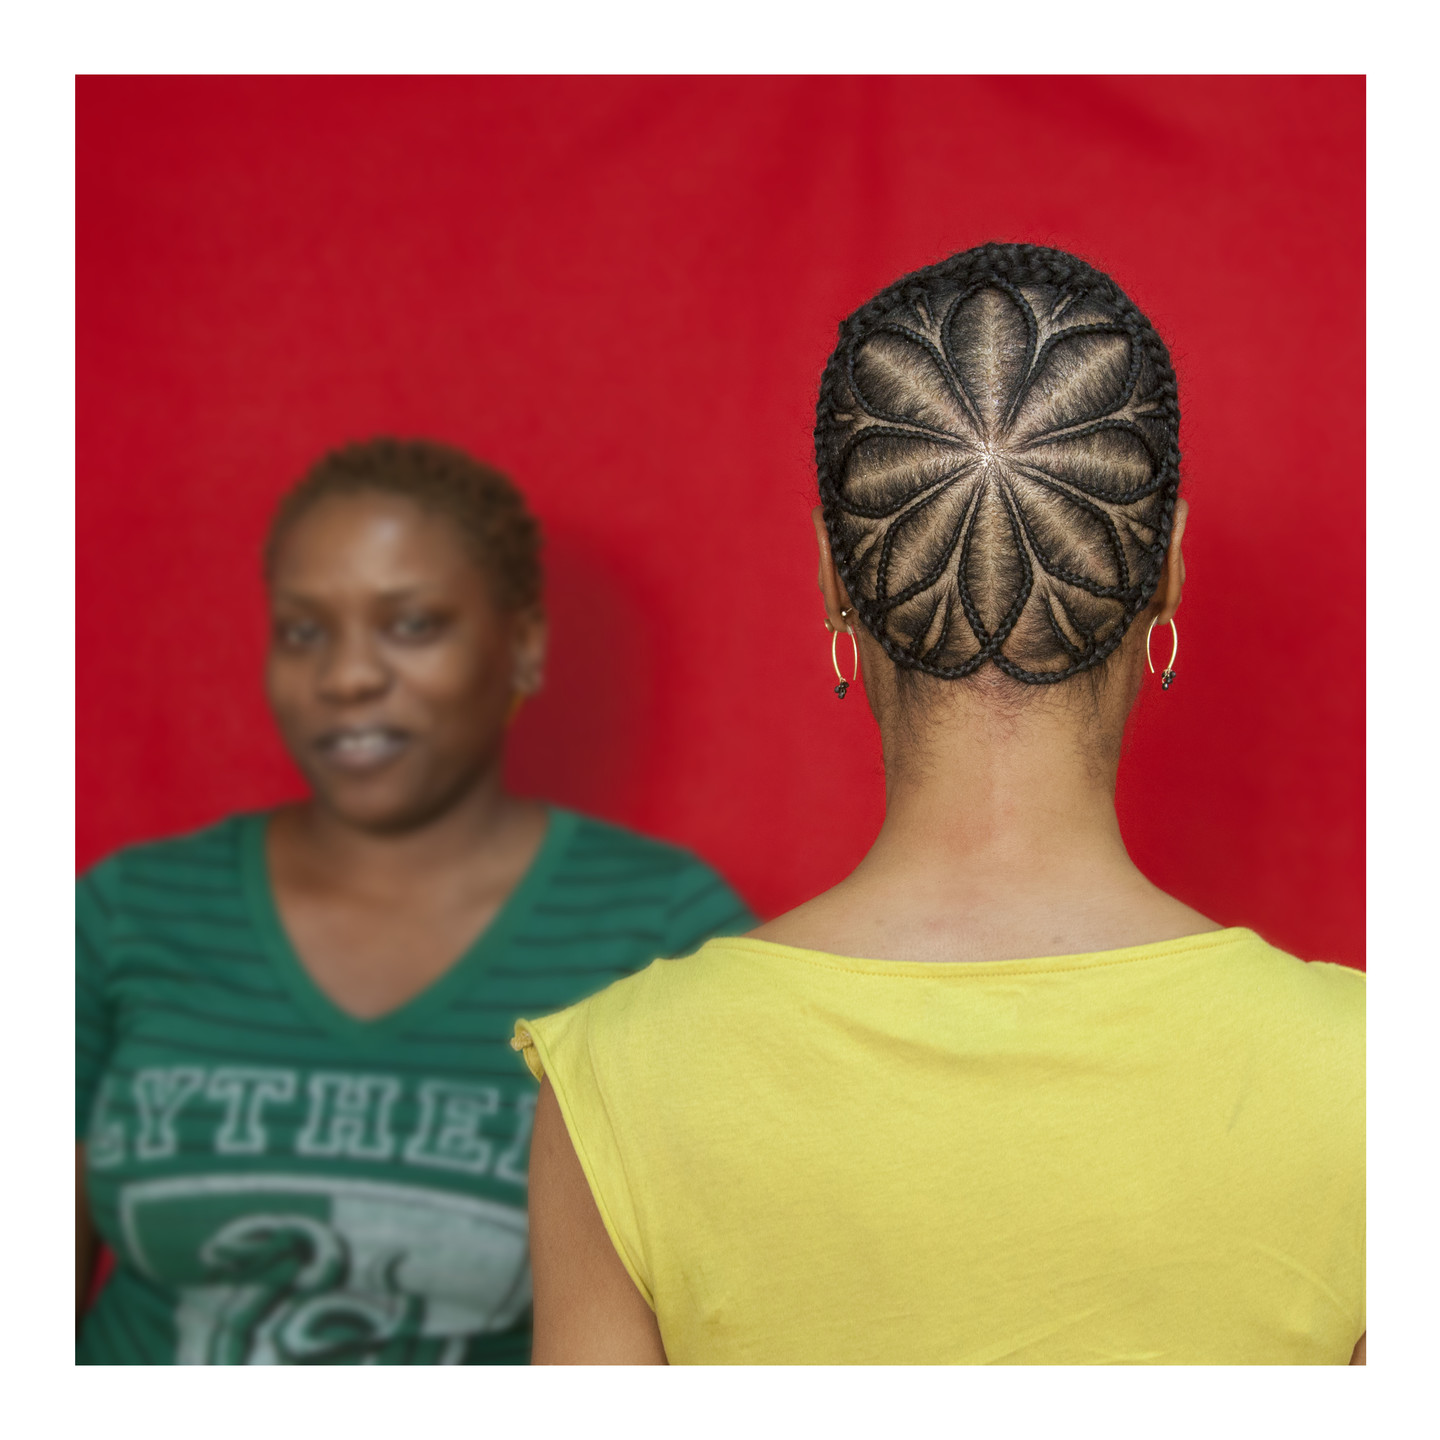 A color photograph featuring two dark skinned women in front of a red background. The woman on the left has very short brown hair and faces the camera, she is wearing a green v-neck t-shirt. The woman on the right stands with her back to the camera wearing a yellow shirt. Her brown hair is braided in an elaborate star pattern.